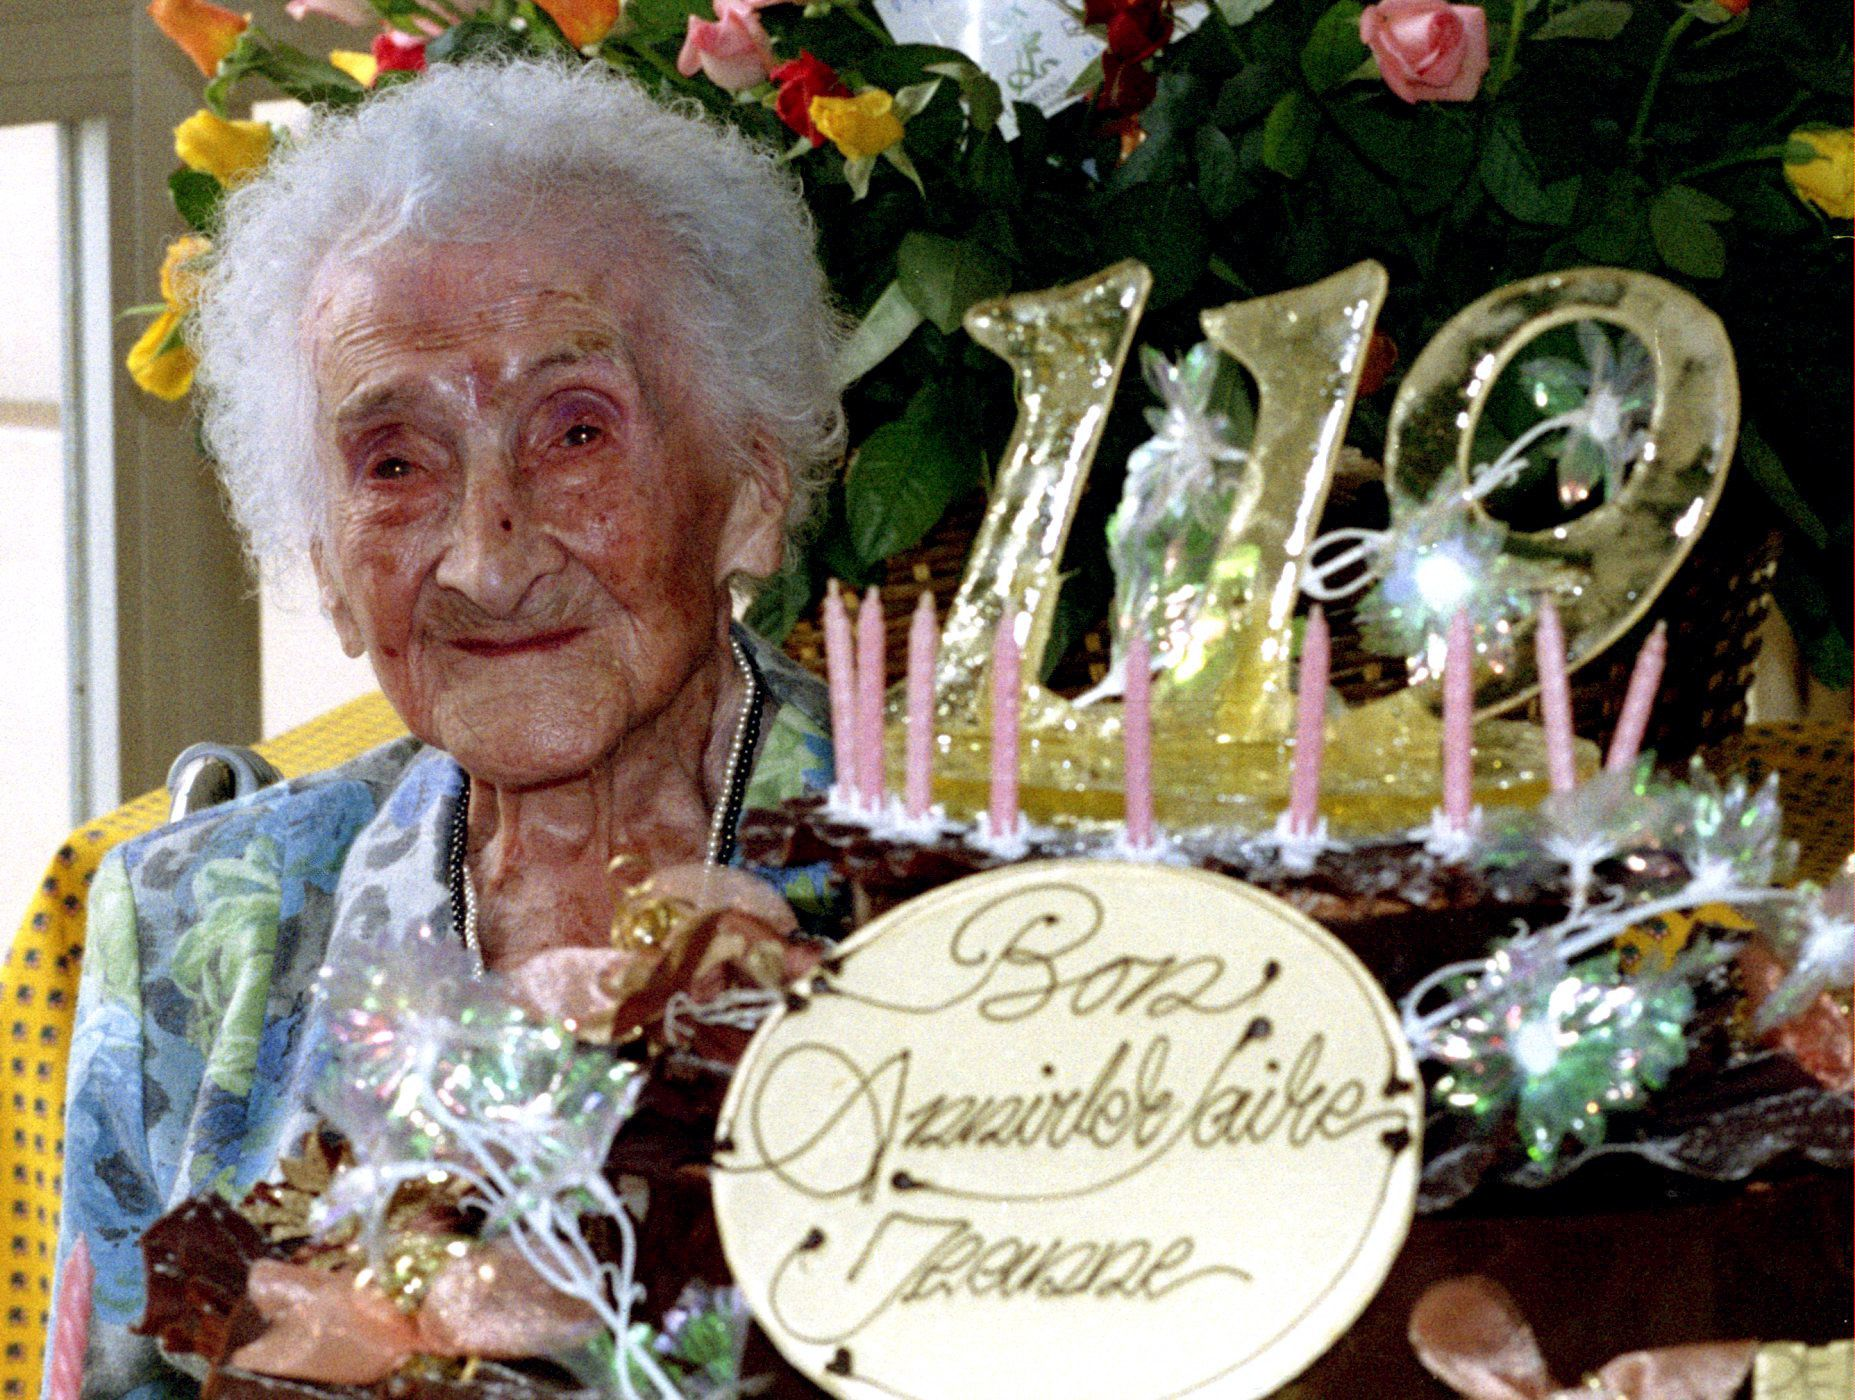 The world's oldest woman, Jeanne Calment, celebrates her 119th birthday in Arles, February 21st. Calment, who lives in a retirement home in the sourthern French city, celebrated with a large cake